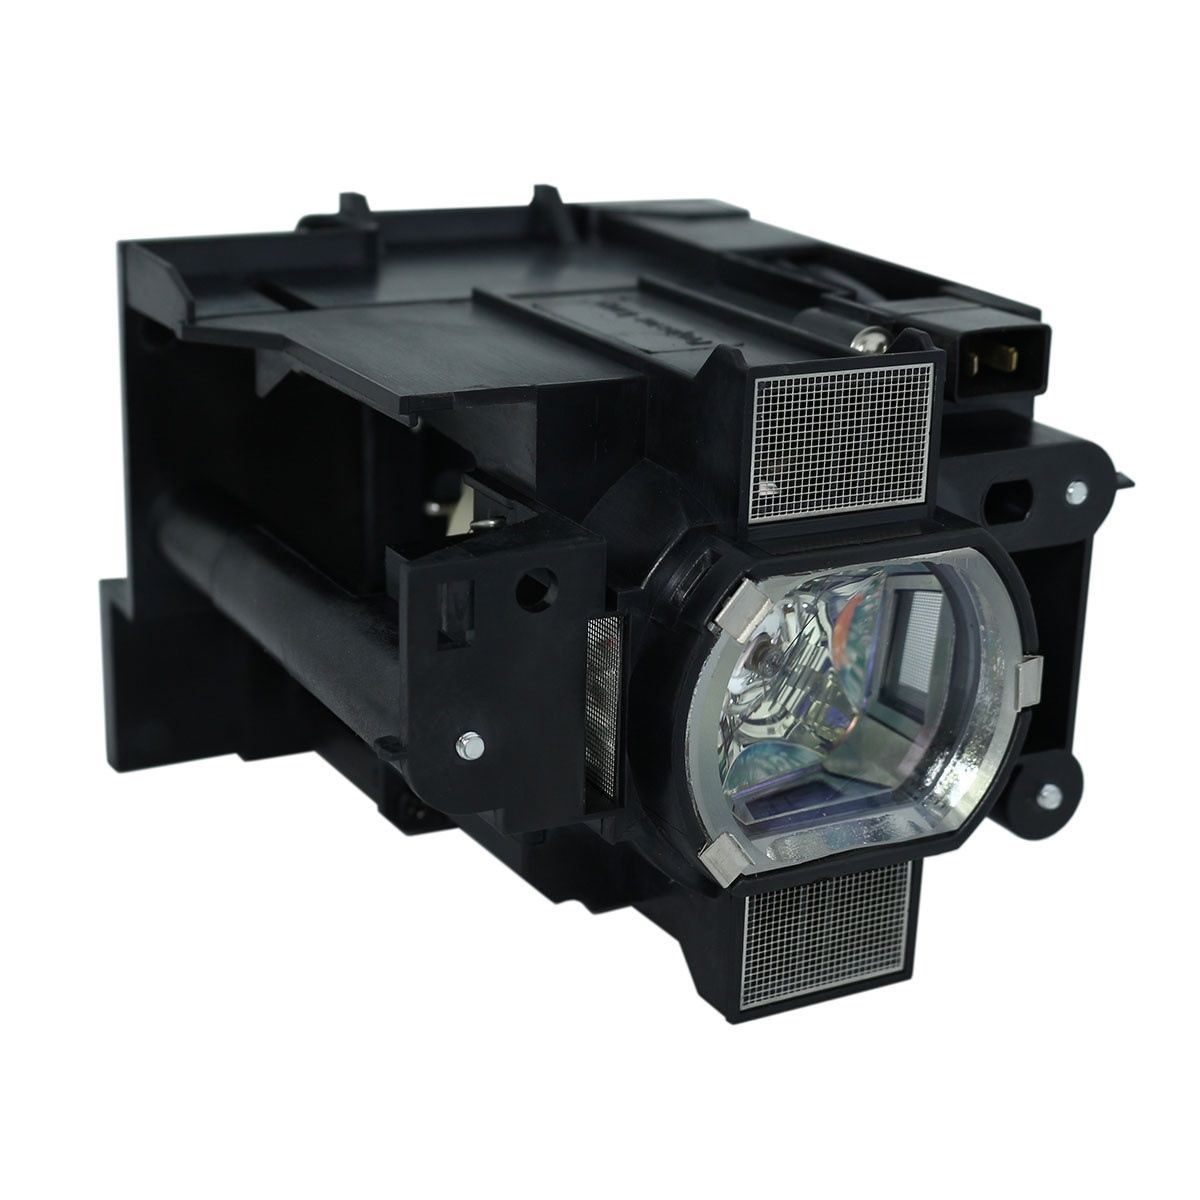 Projector Lamp Bulb DT01281 DT-01281 for HITACHI CP-SX8350 SX8350 CP-WUX8440 CP-WX8240 WX8240 CP-X8150 X8150 with housing dt01021 projector lamp bulb for hitachi cp x3010 cp x3010n cp x3010z cp x3011 cp x3011n